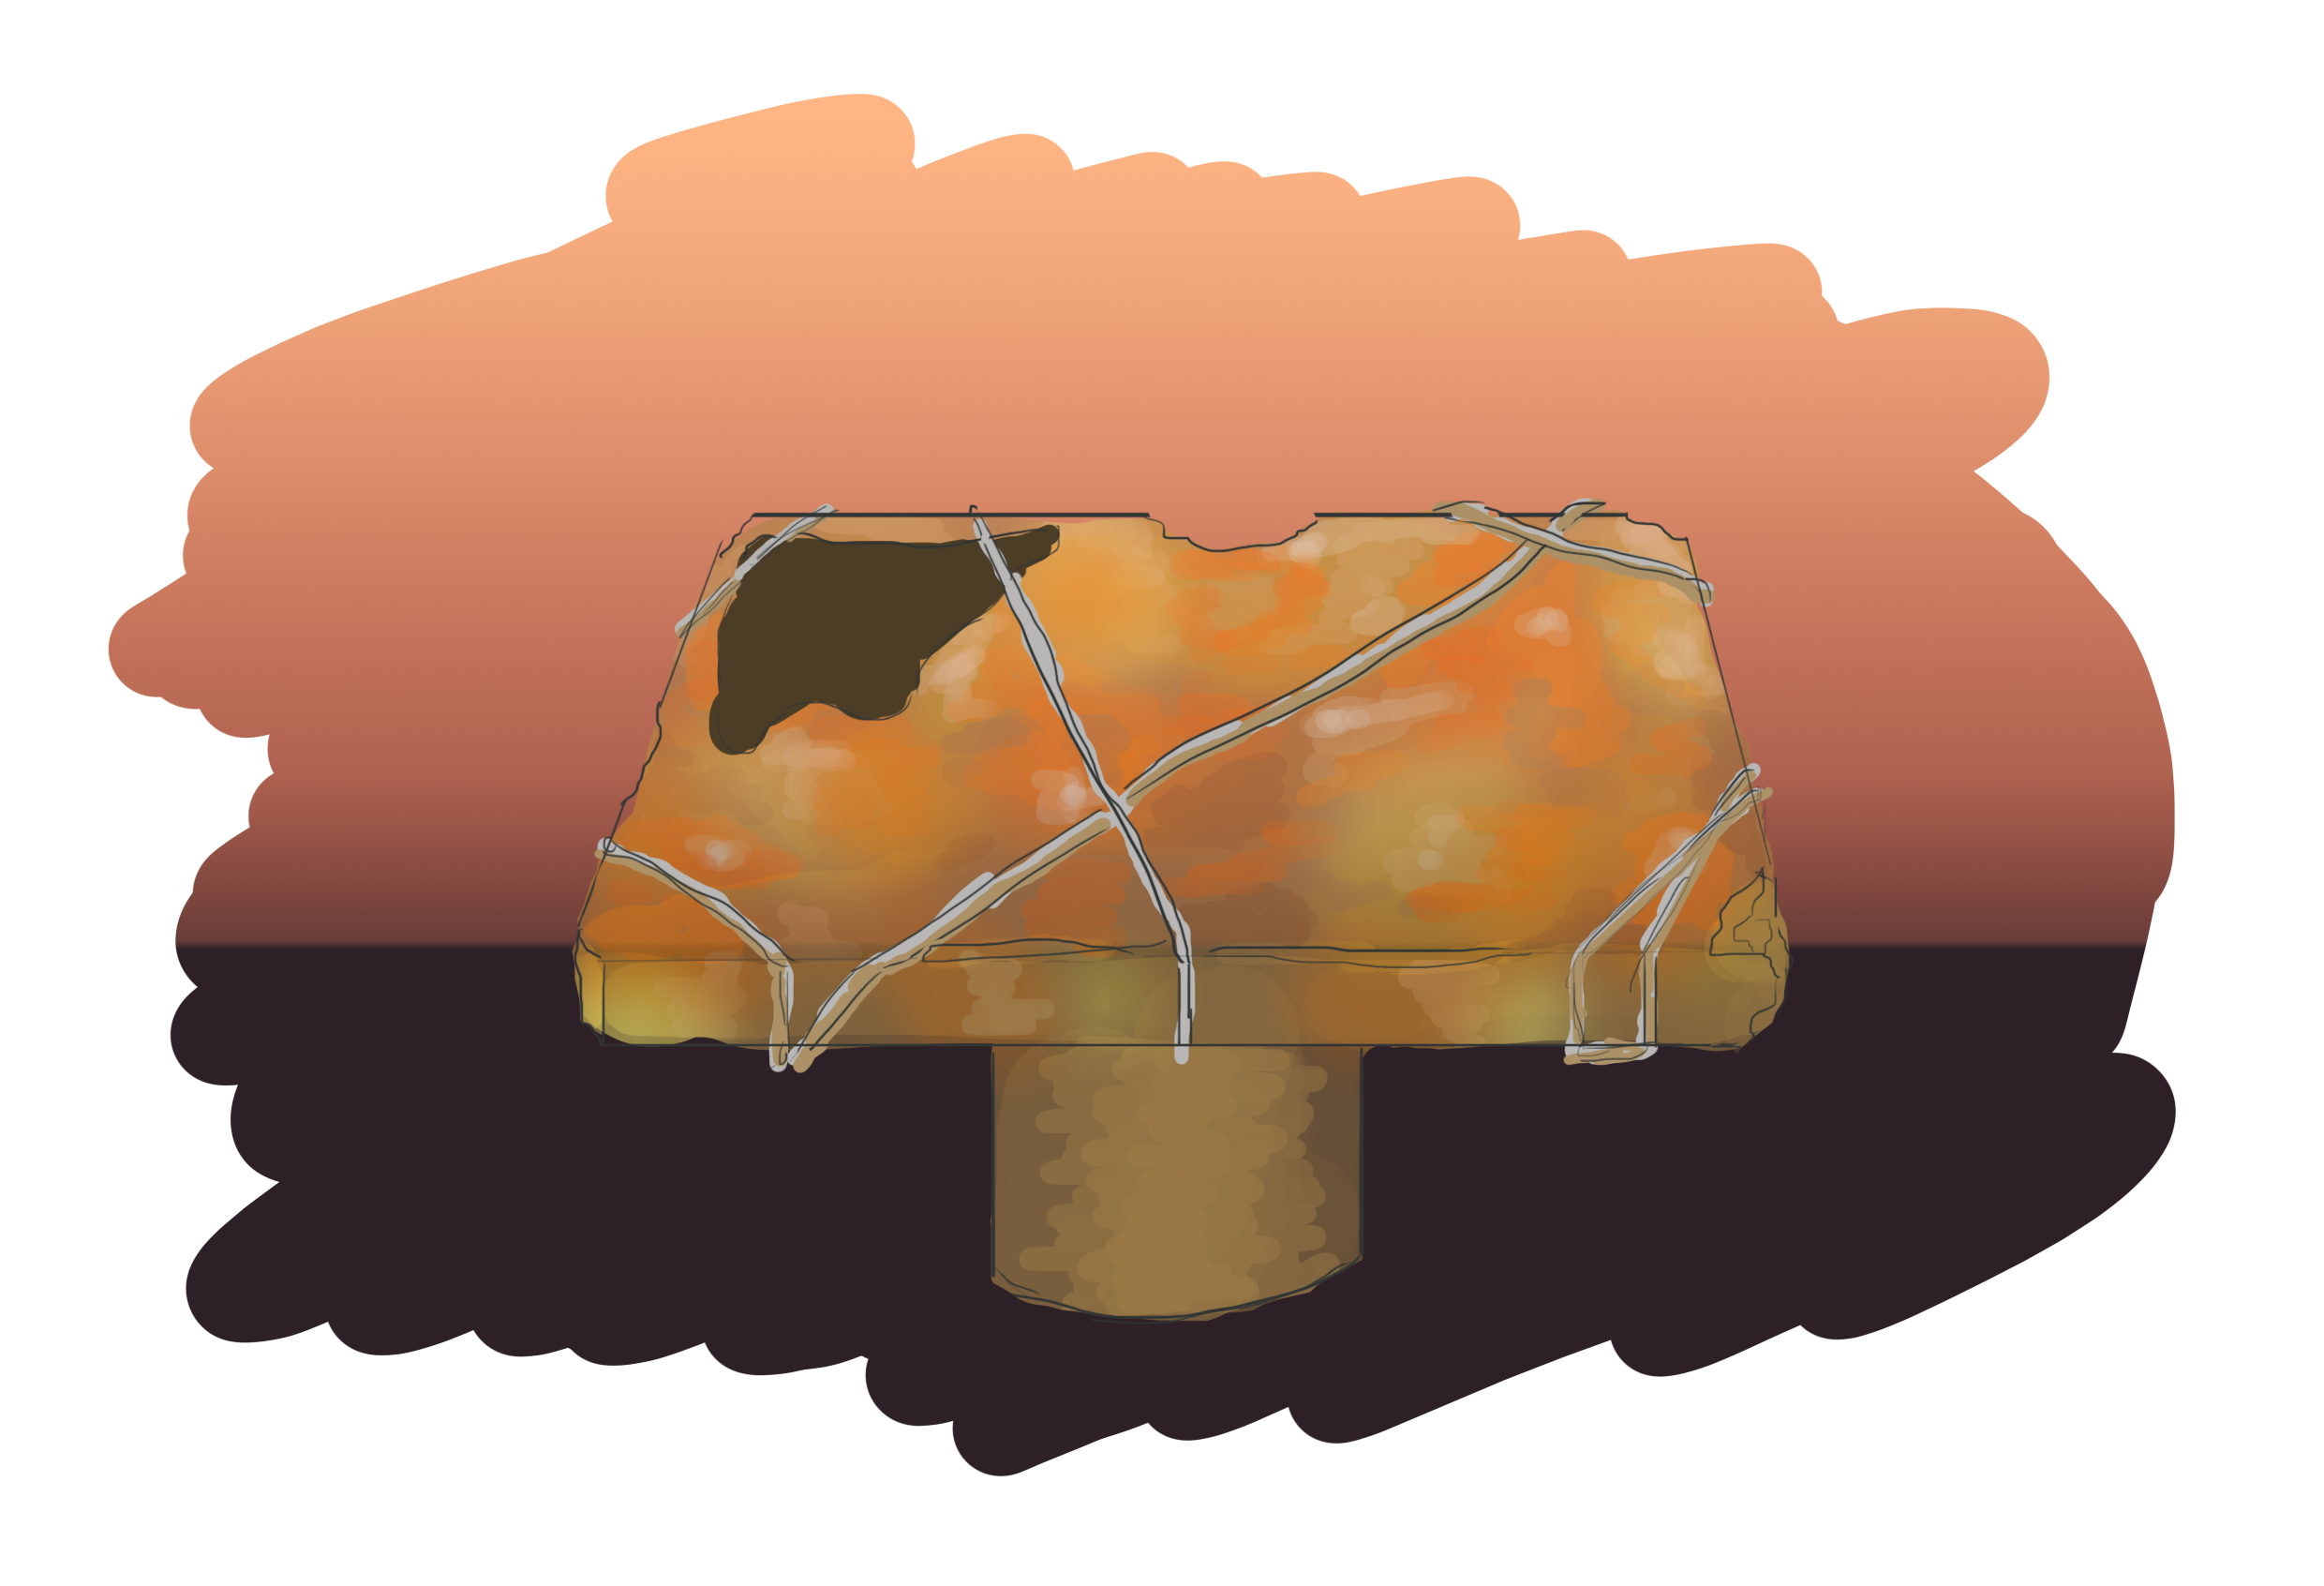 Stone concept for the mapholder - Aporia: Beyond the Valley